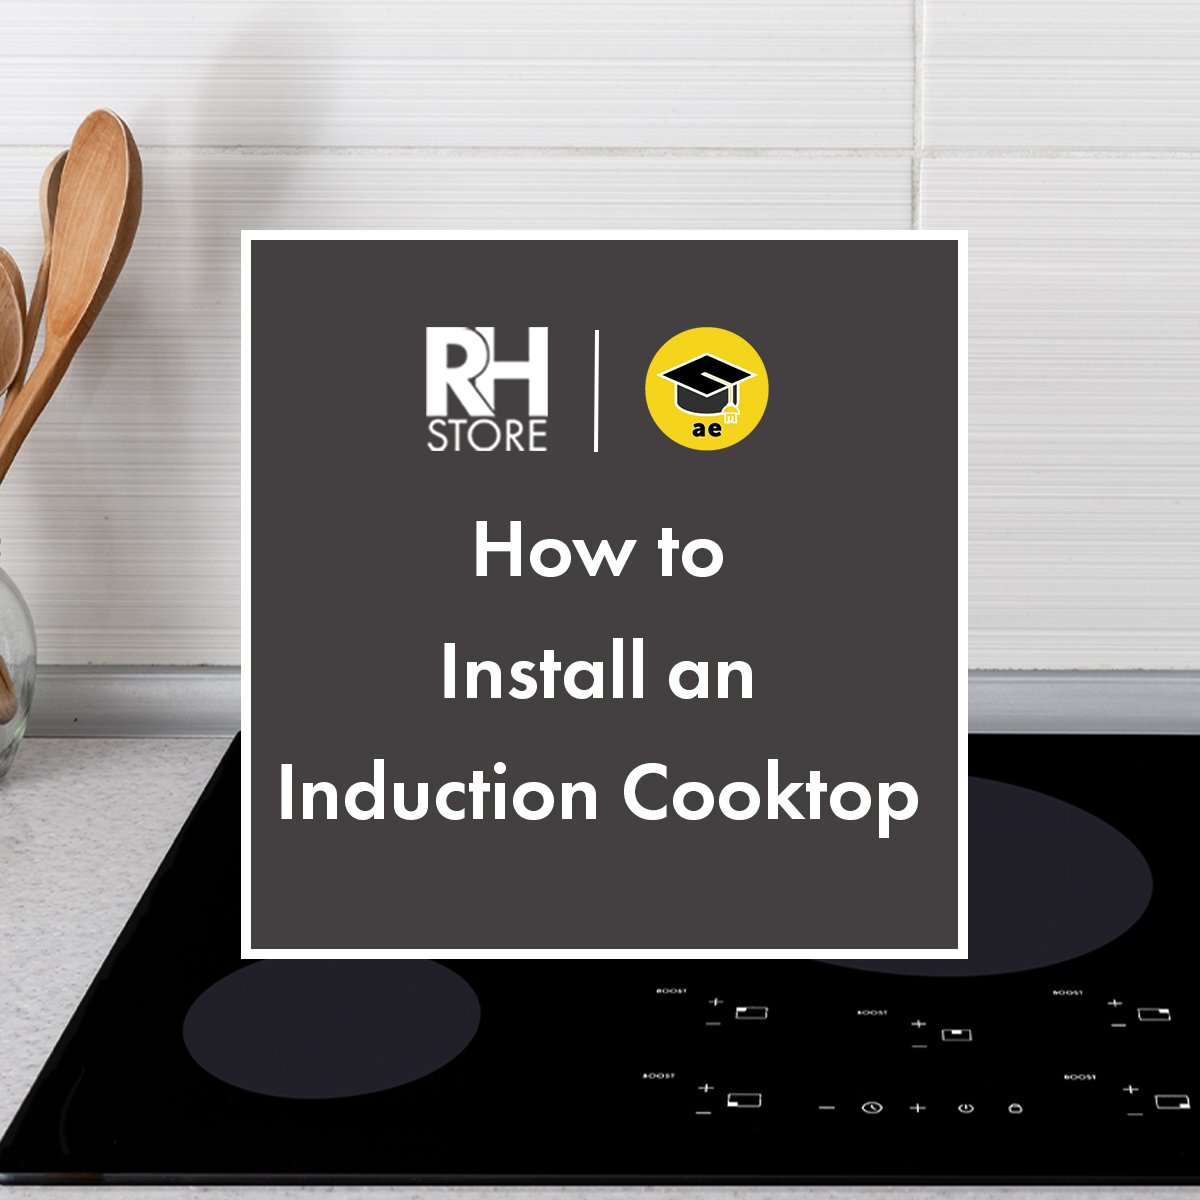 How to Install an Induction Cooktop - TRHS x AE Series